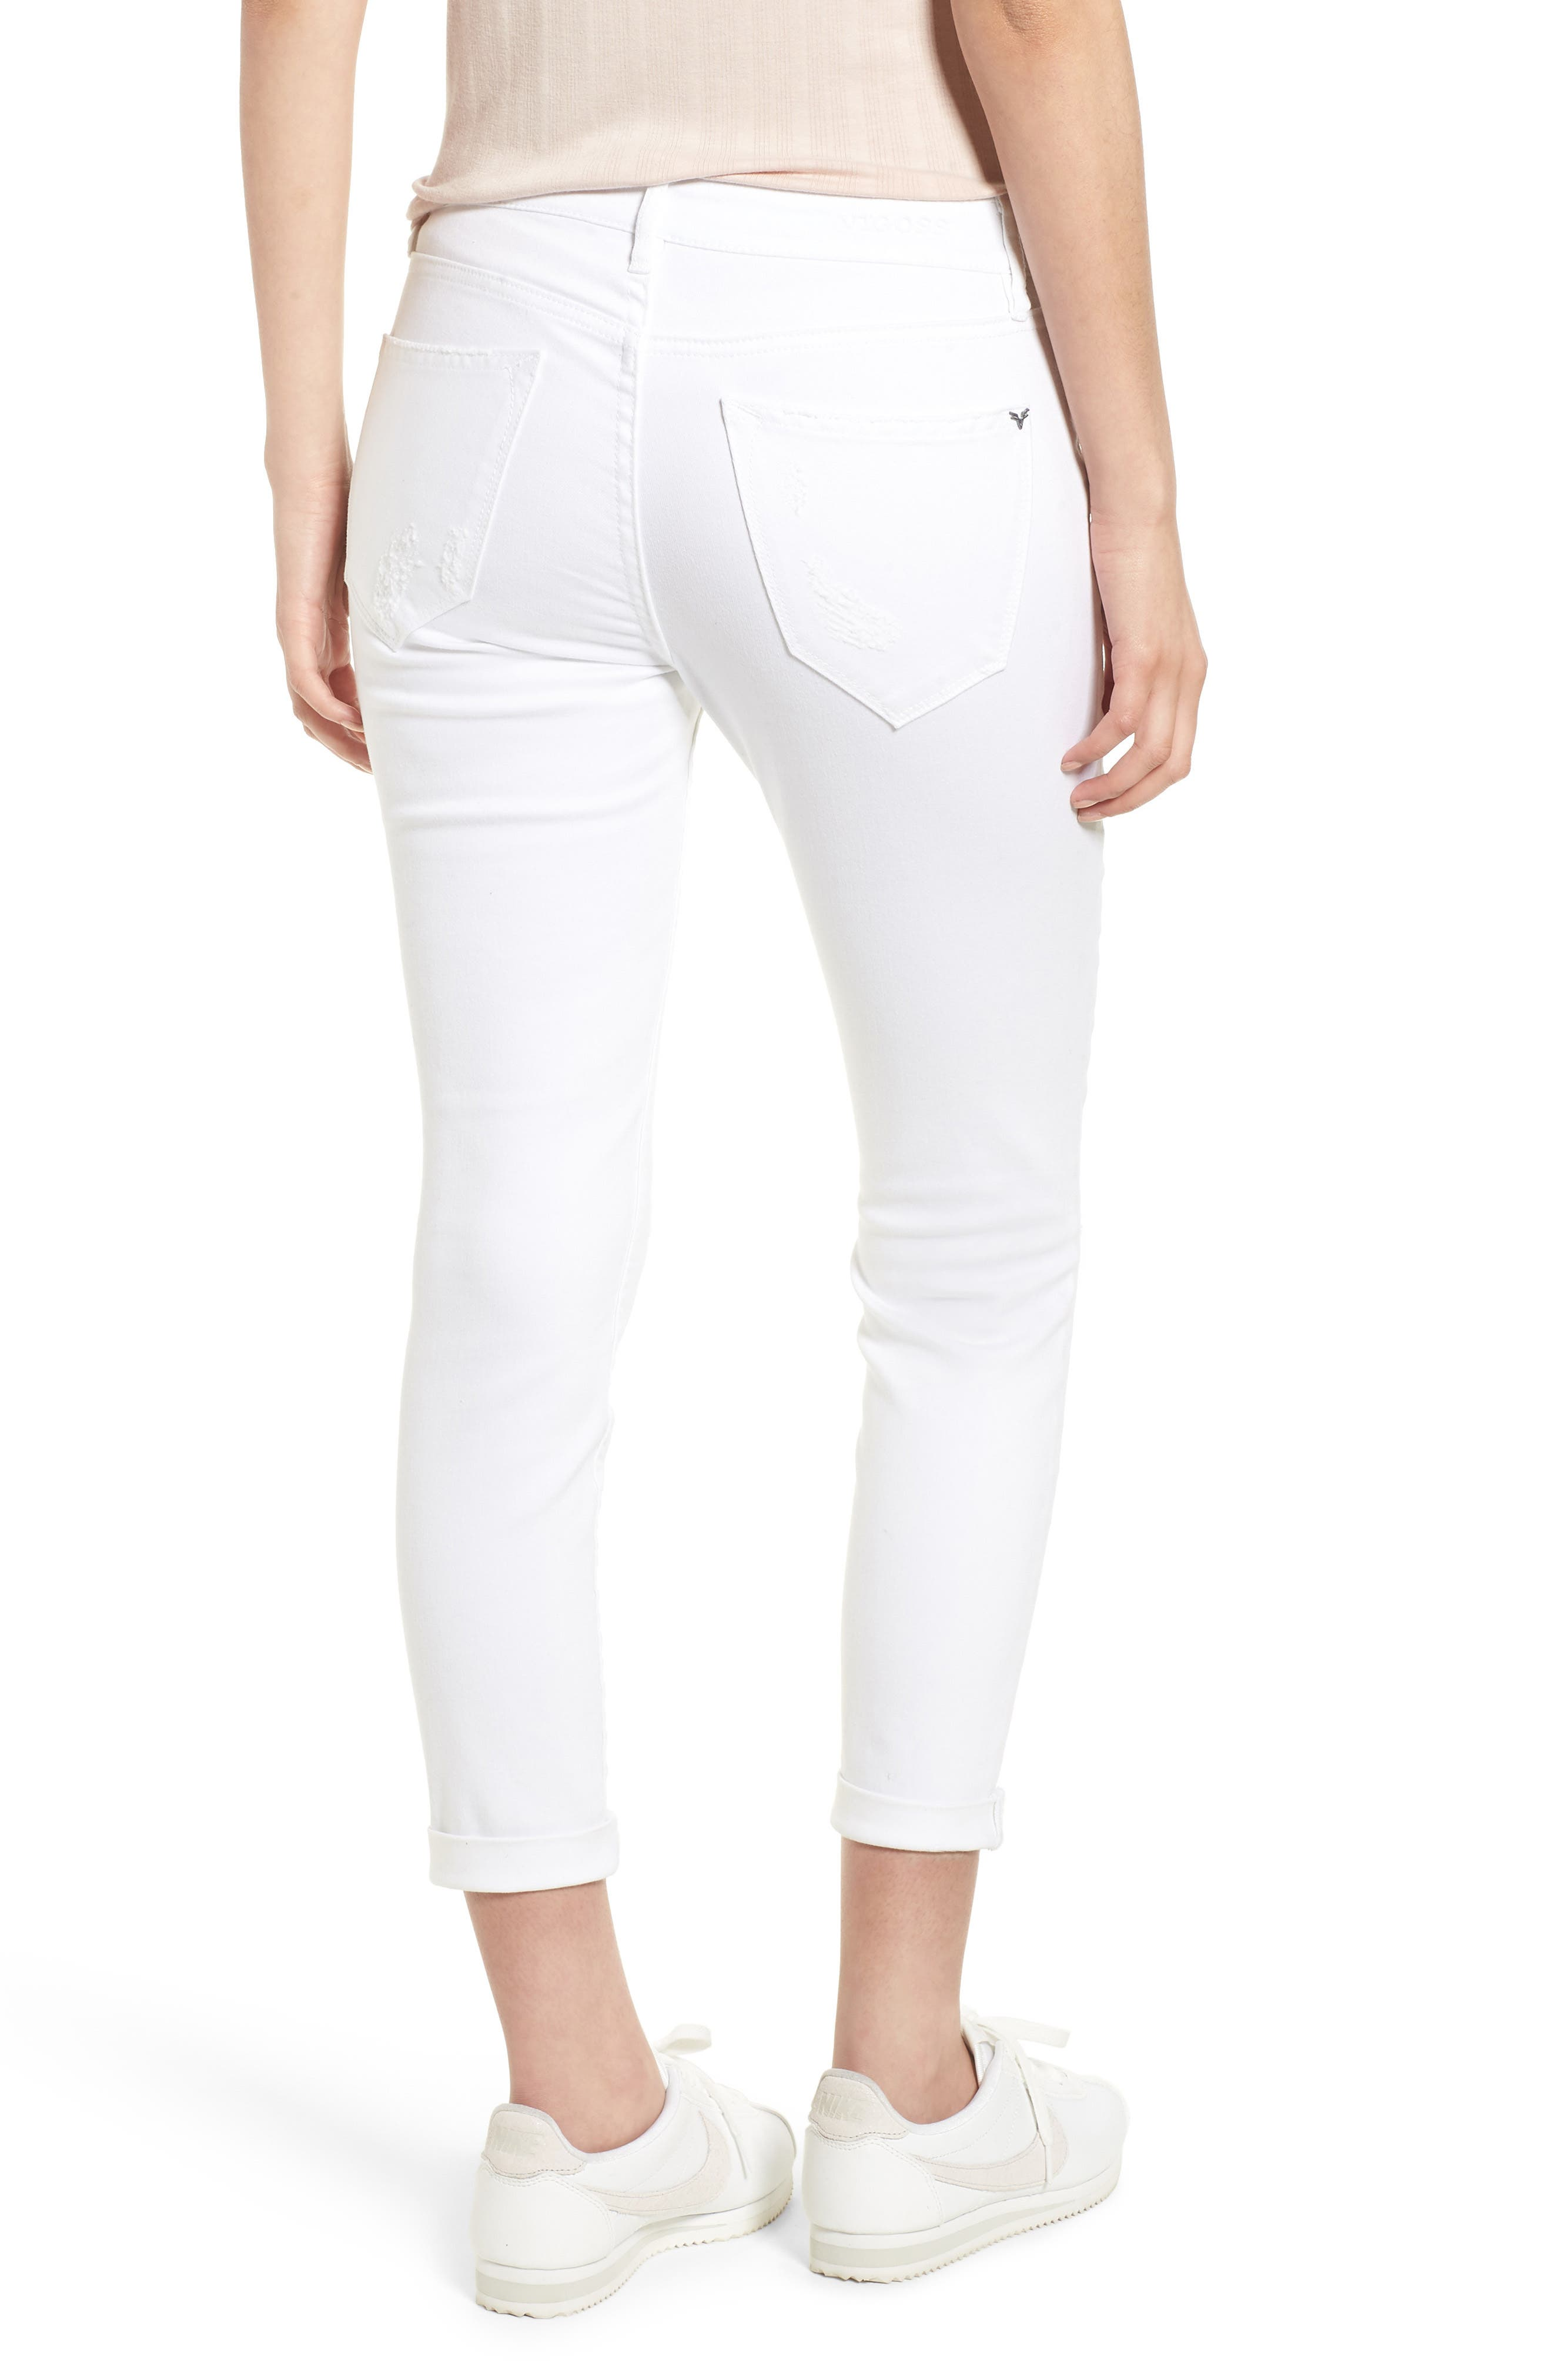 Thompson Tomboy Distressed Cuffed Crop Skinny Jeans,                             Alternate thumbnail 2, color,